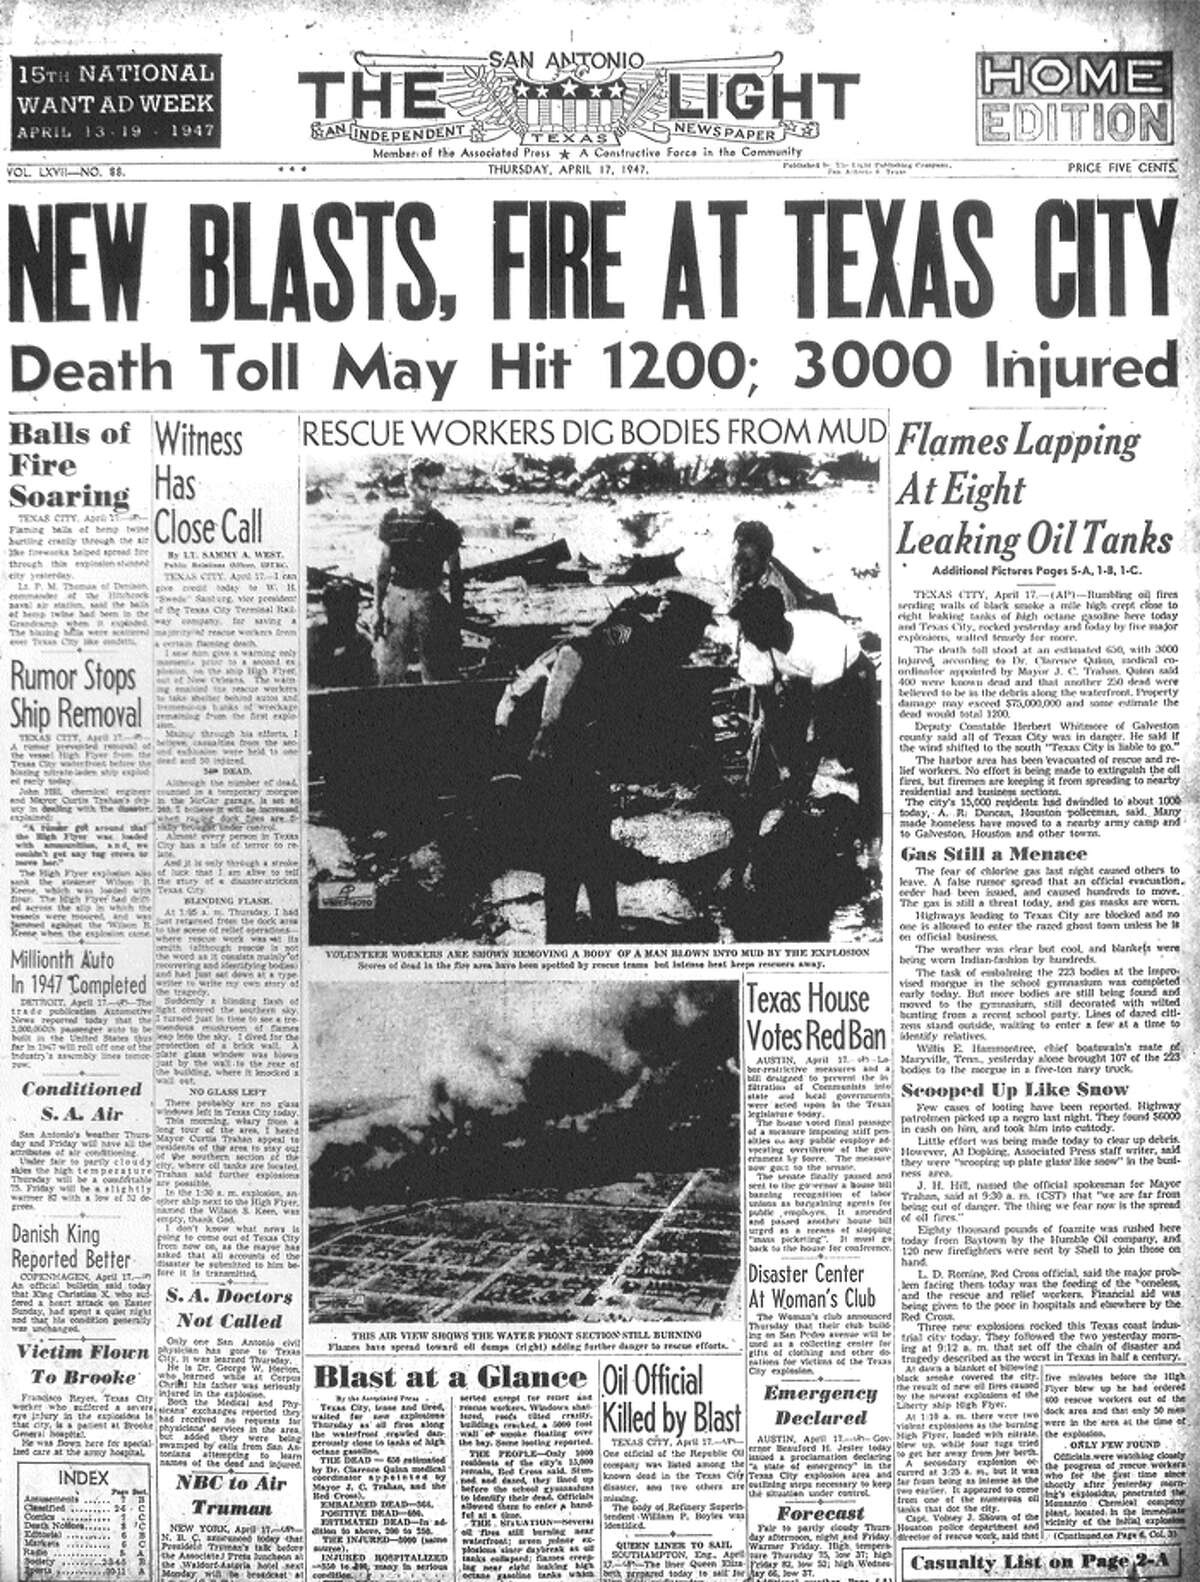 THURSDAY, APRIL 17, 1947: A fire aboard a ship in the Port of Texas City detonates ammonium nitrate, resulting in a chain of fires and explosions that kills more than 575 people, in the deadliest industrial accident in U.S. history.